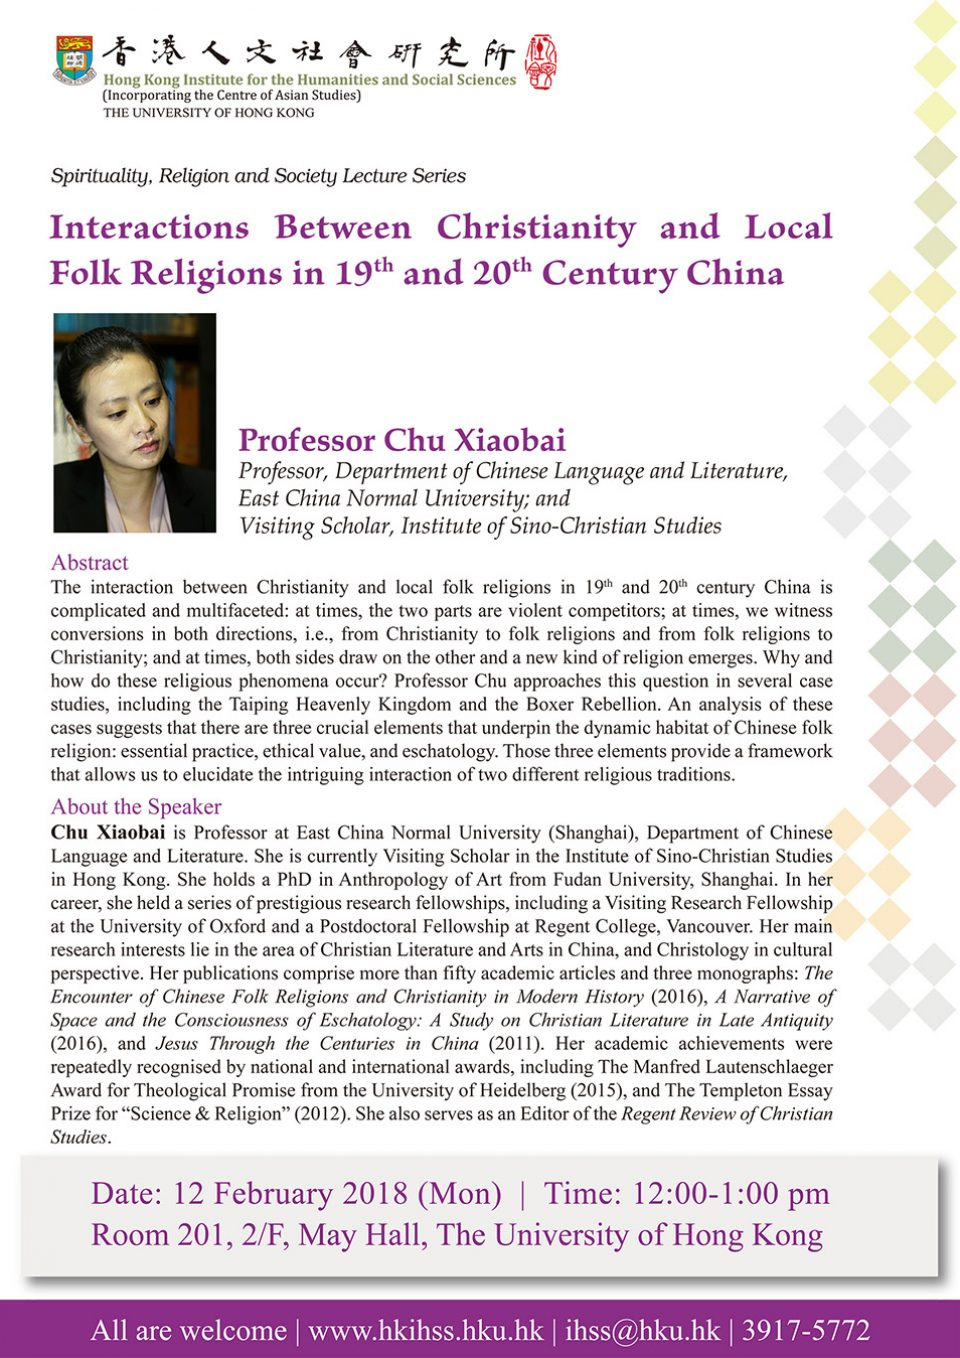 """Spirituality, Religion and Society Lecture Series """"Interactions Between Christianity and Local Folk Religions in 19th and 20th Century China"""" by Professor Xiaobai Chu (February 12, 2018)"""